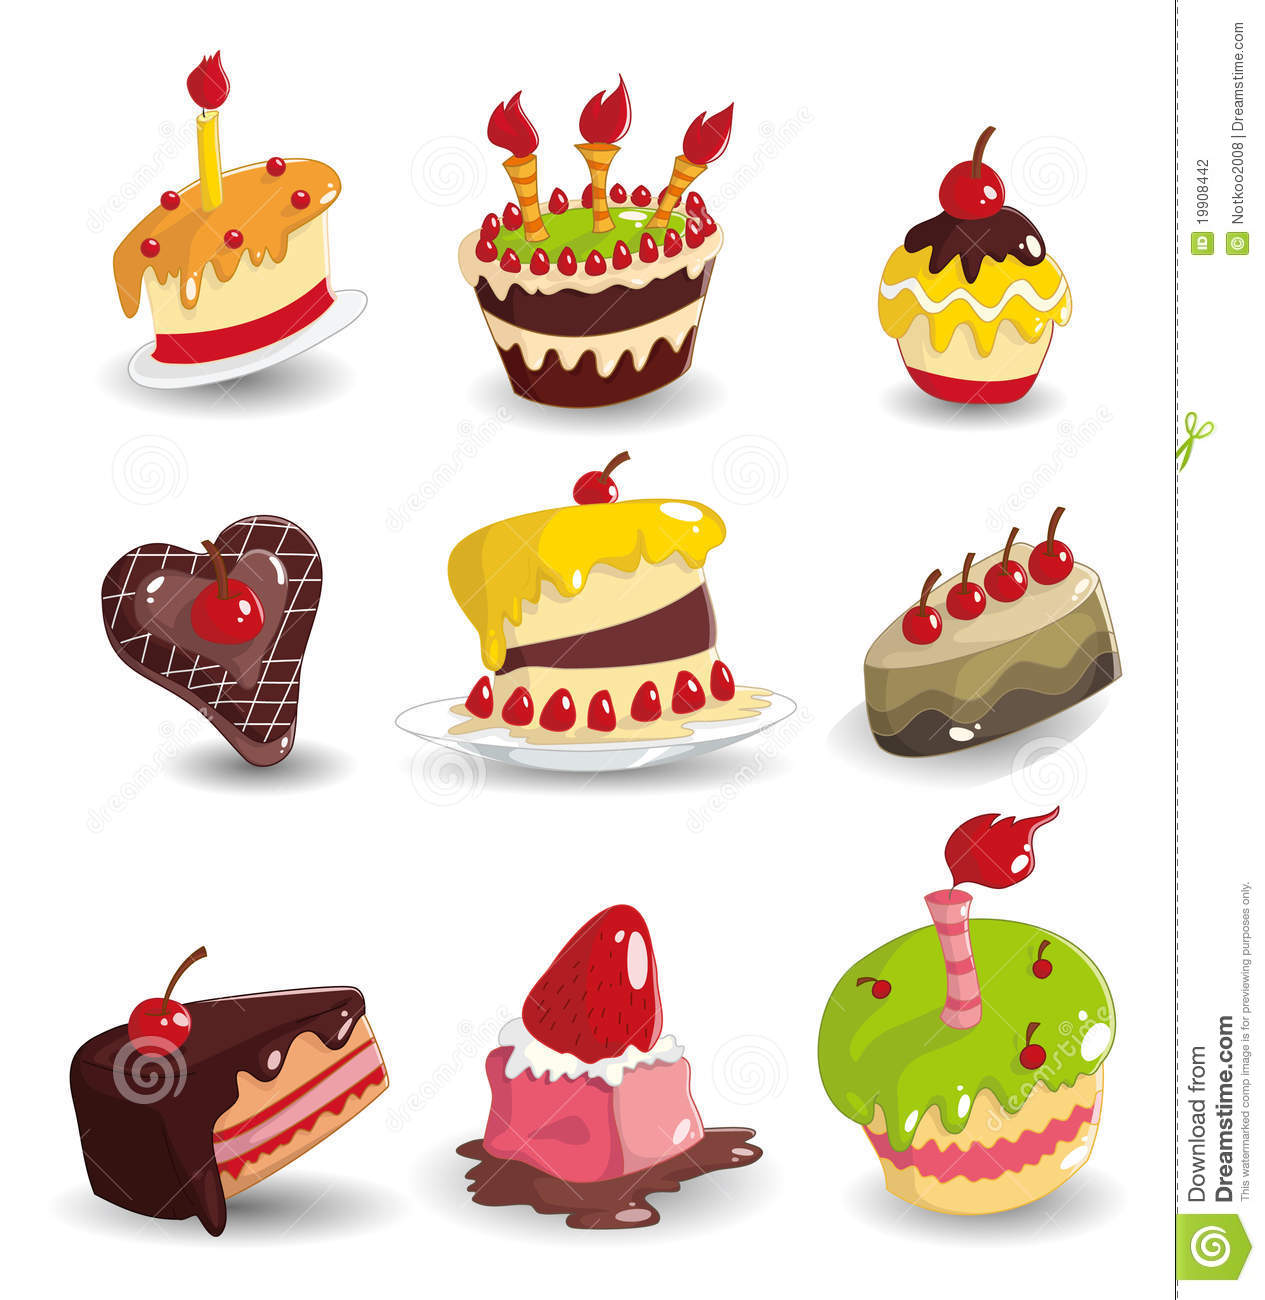 Christmas Cakes Images Free Download